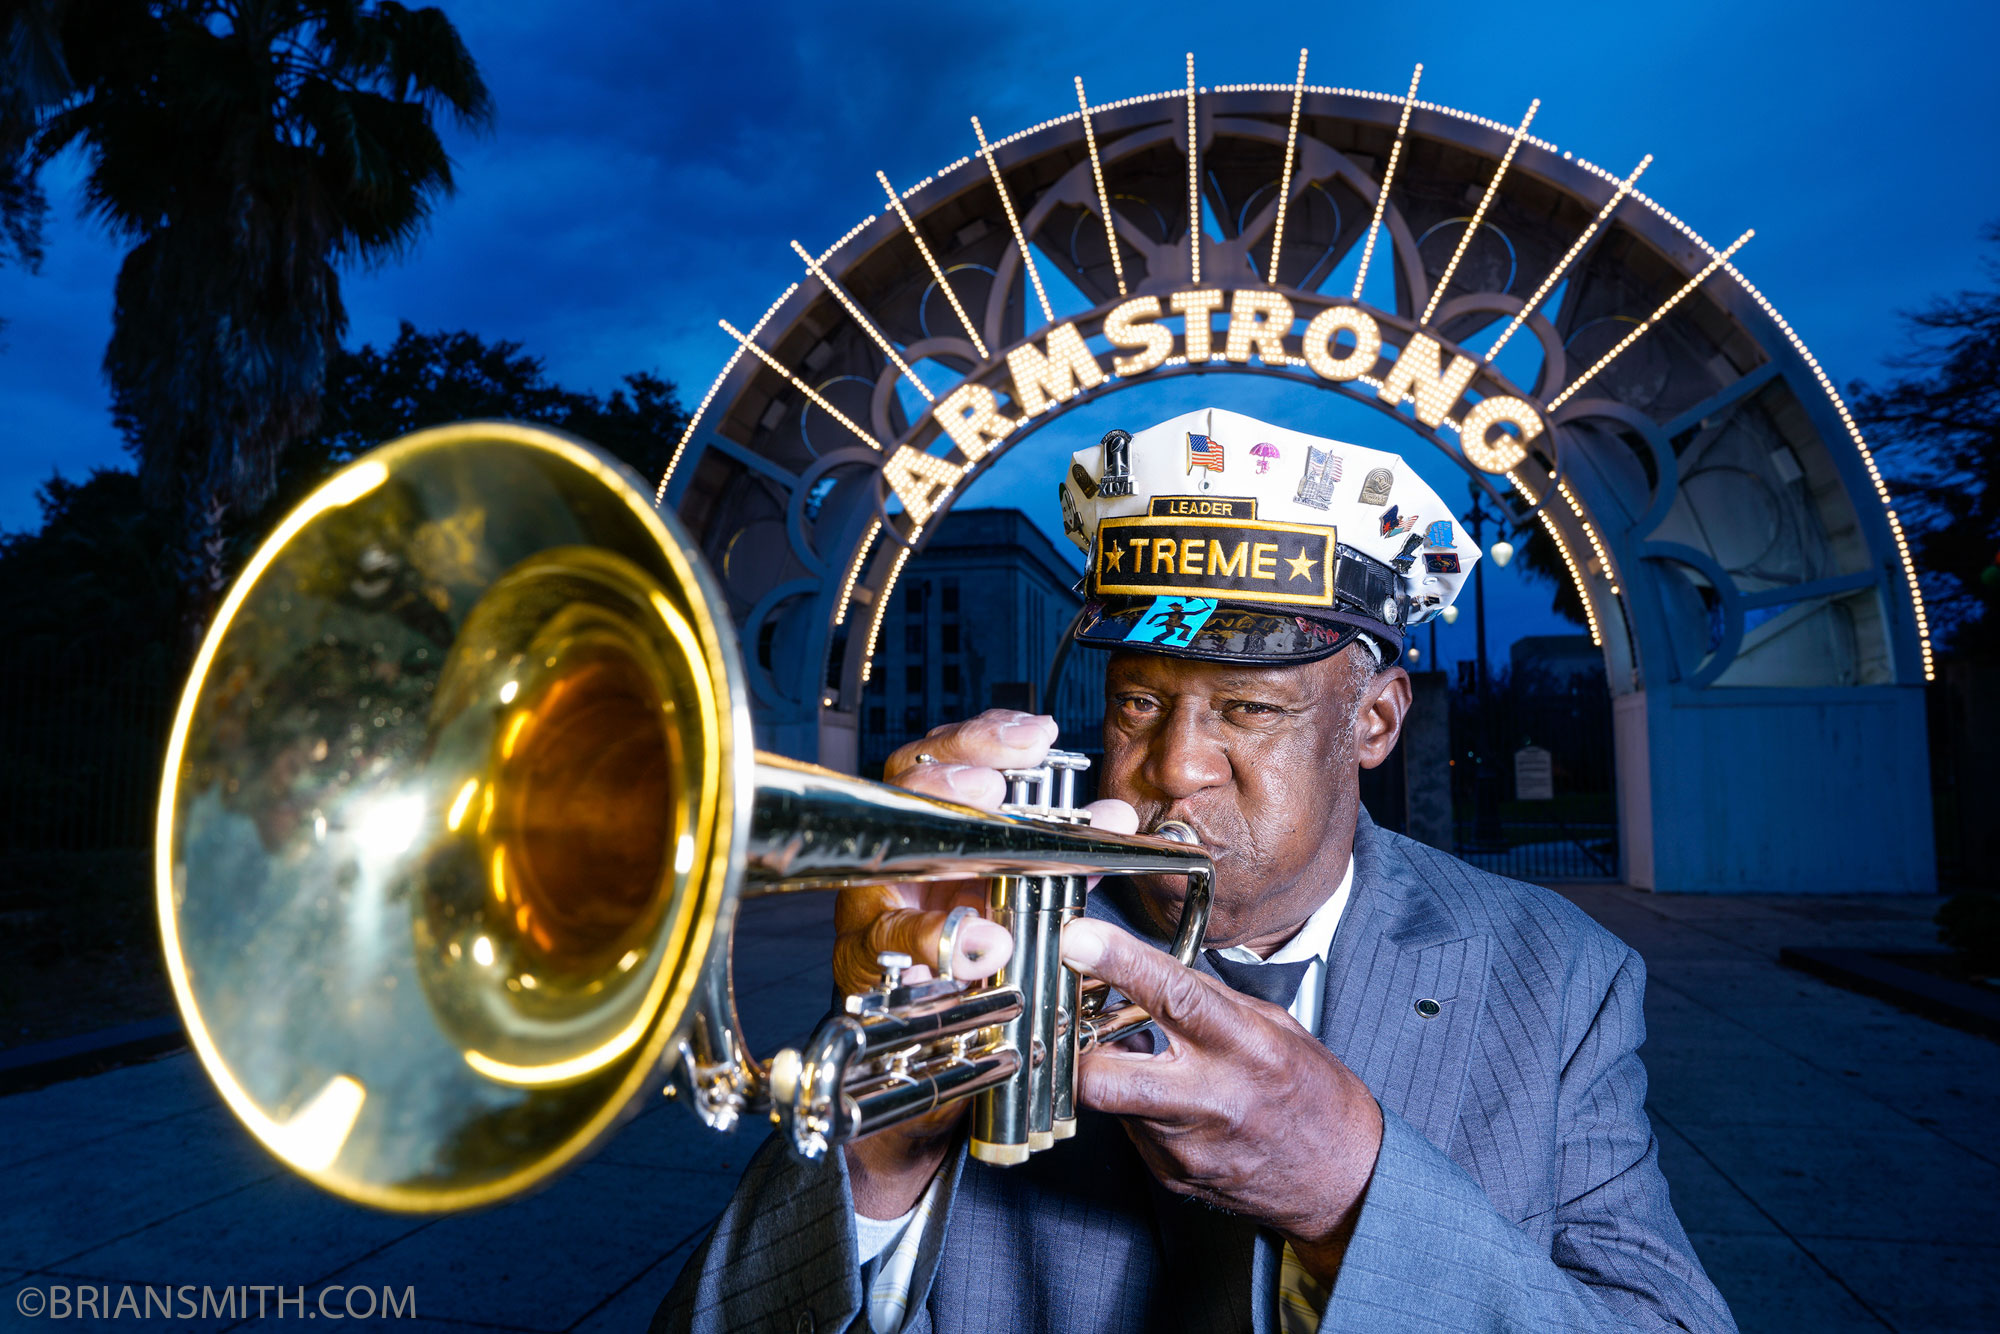 Armstrong Park New Orleans Jazz Brass Band shot with Sony FE 24-70mm F2.8 GM lens